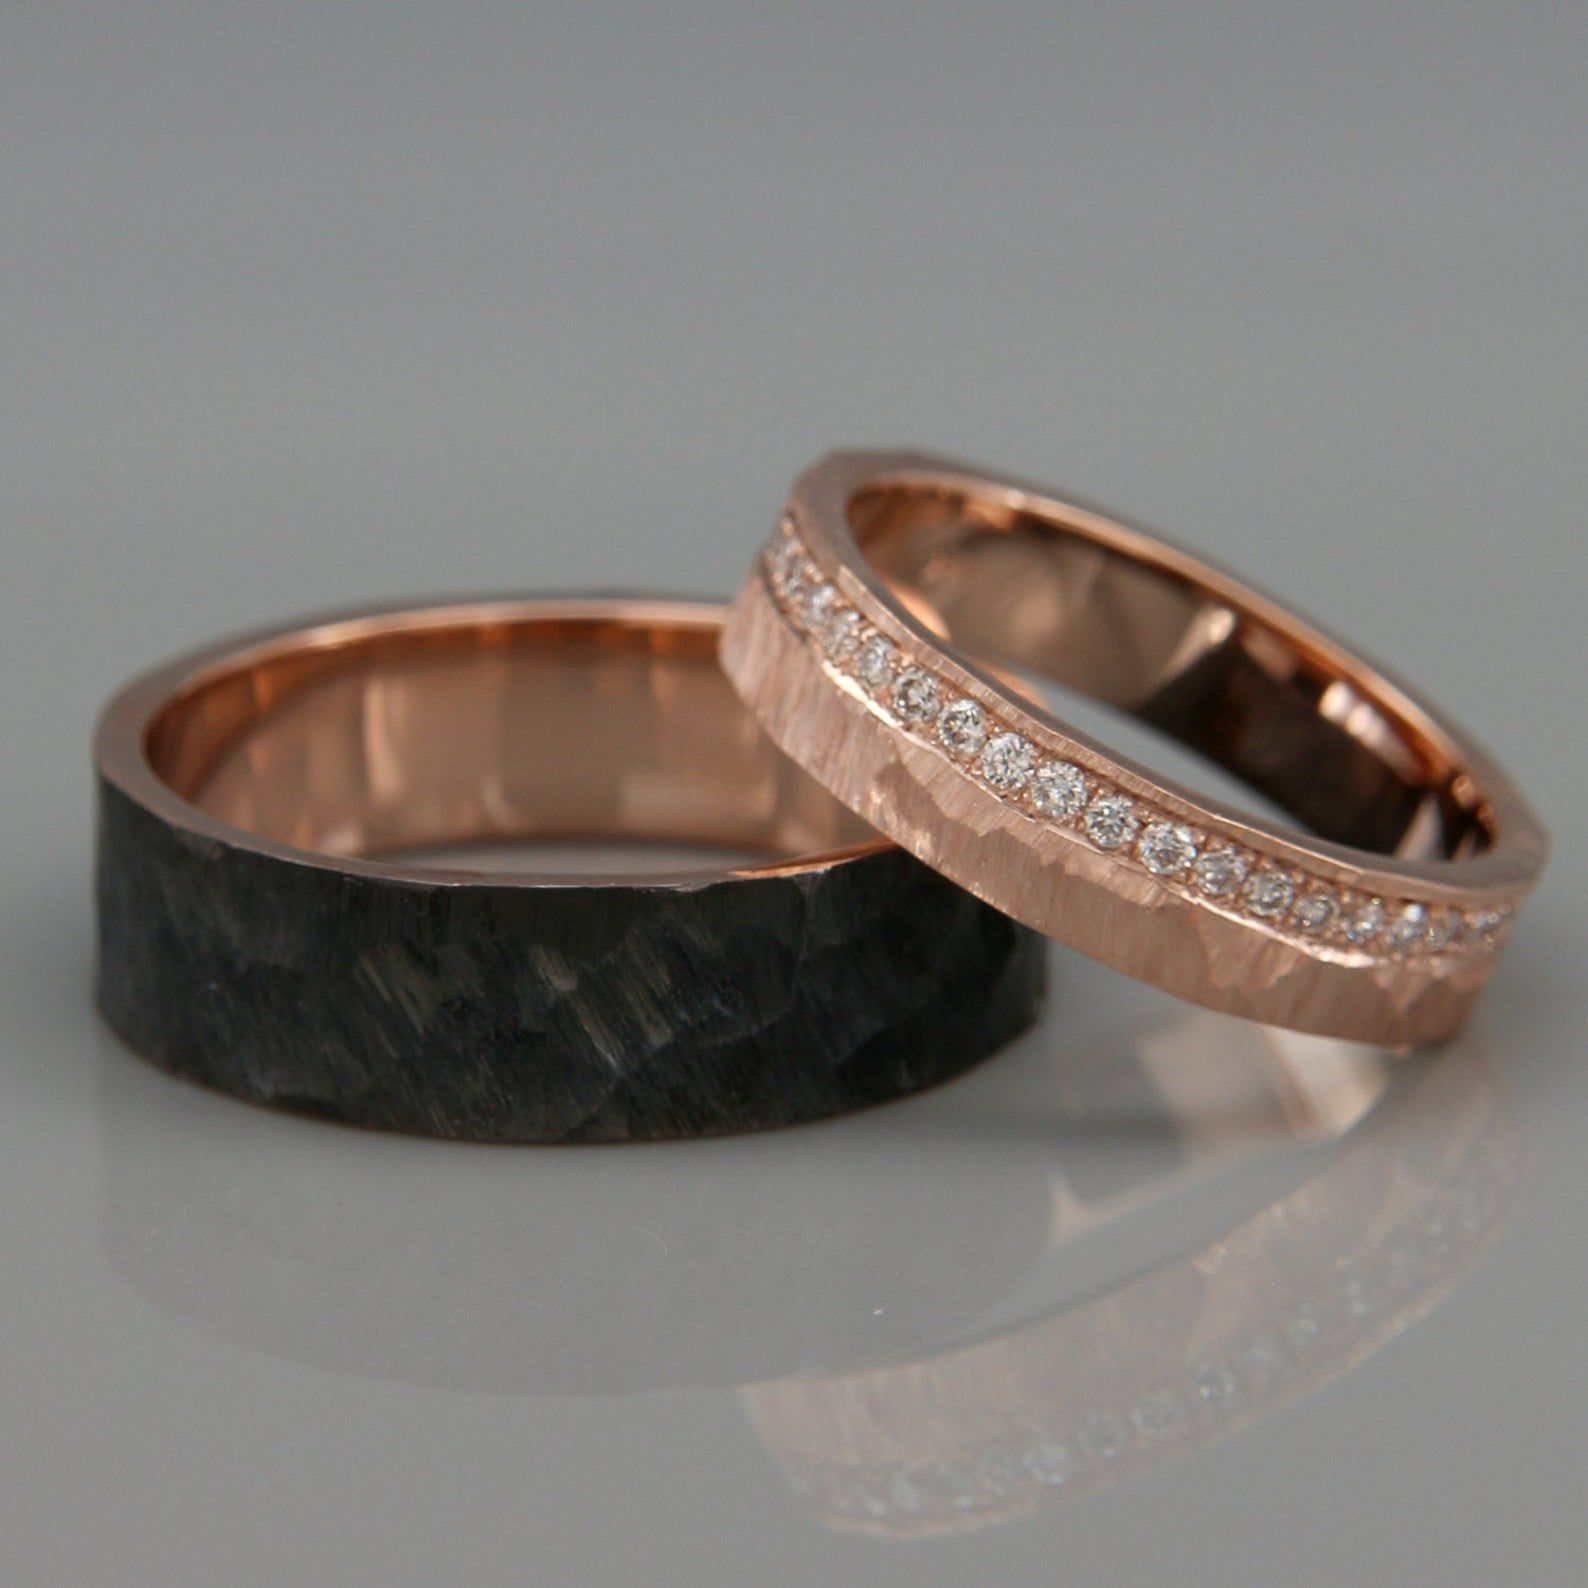 His And Hers Wedding Ring Set 14k Rose Gold Wedding Band Set With Dimoands In Rough Faceted Style Black Rhodium Wedding Bands Set Gold Wedding Band Sets Wedding Rings Rose